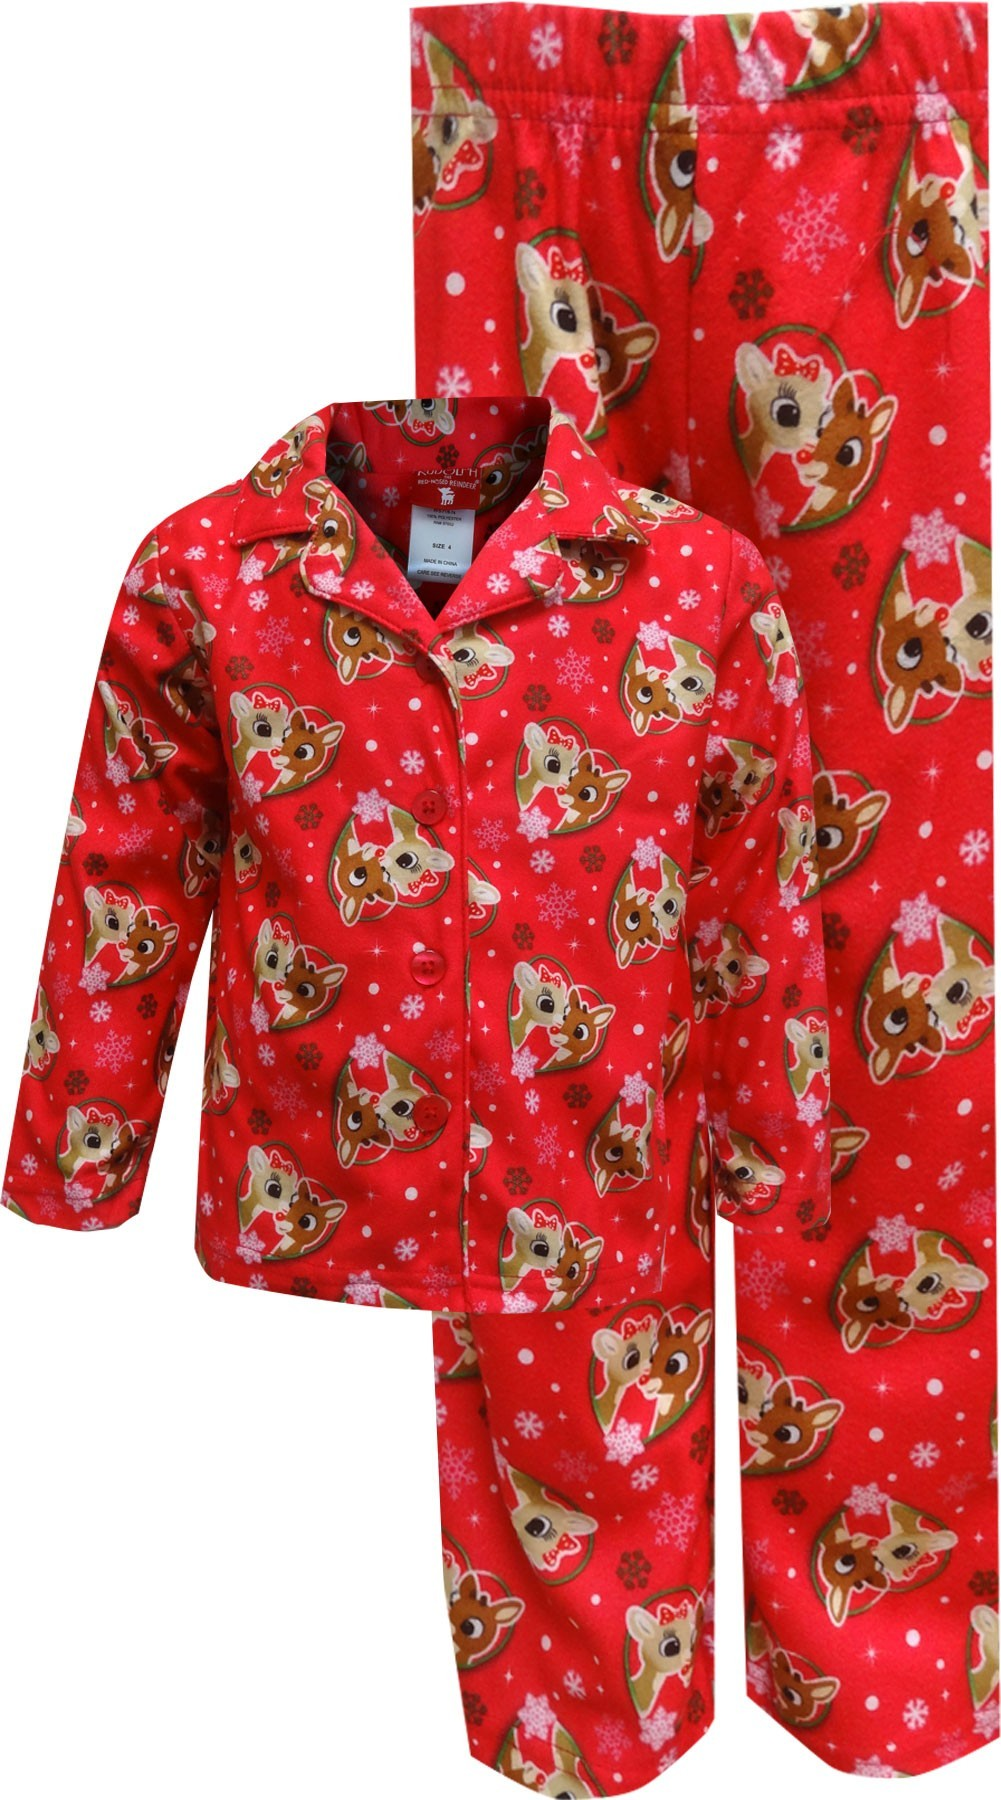 RUDOLPH THE RED NOSED REINDEER GIRLS TODDLER PAJAMA SET 24 MONTHS